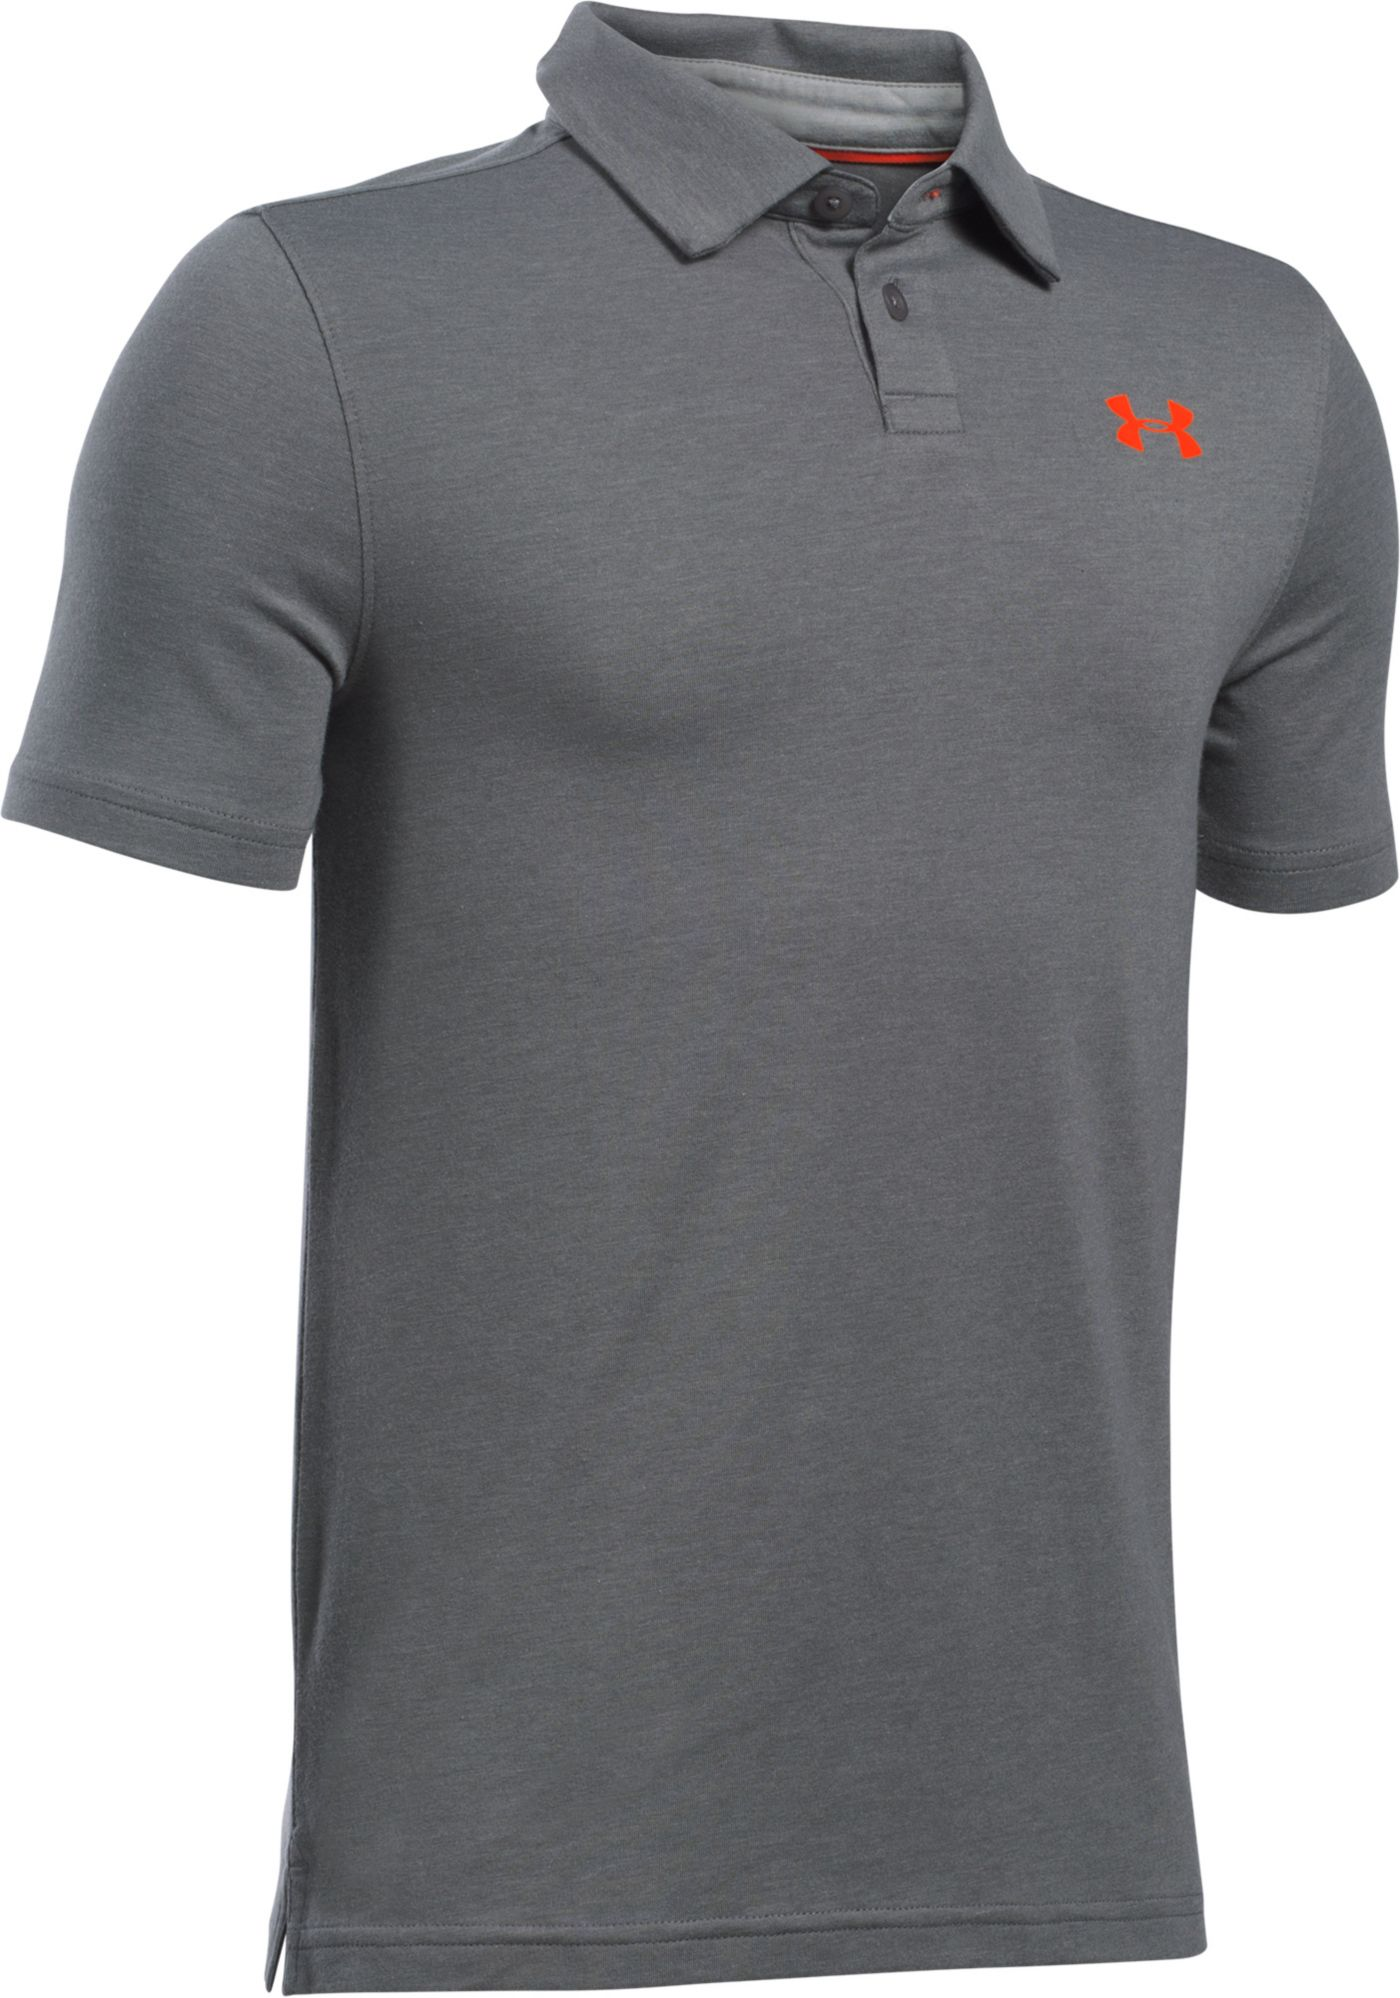 Under Armour Boys' Charged Cotton Heather Polo